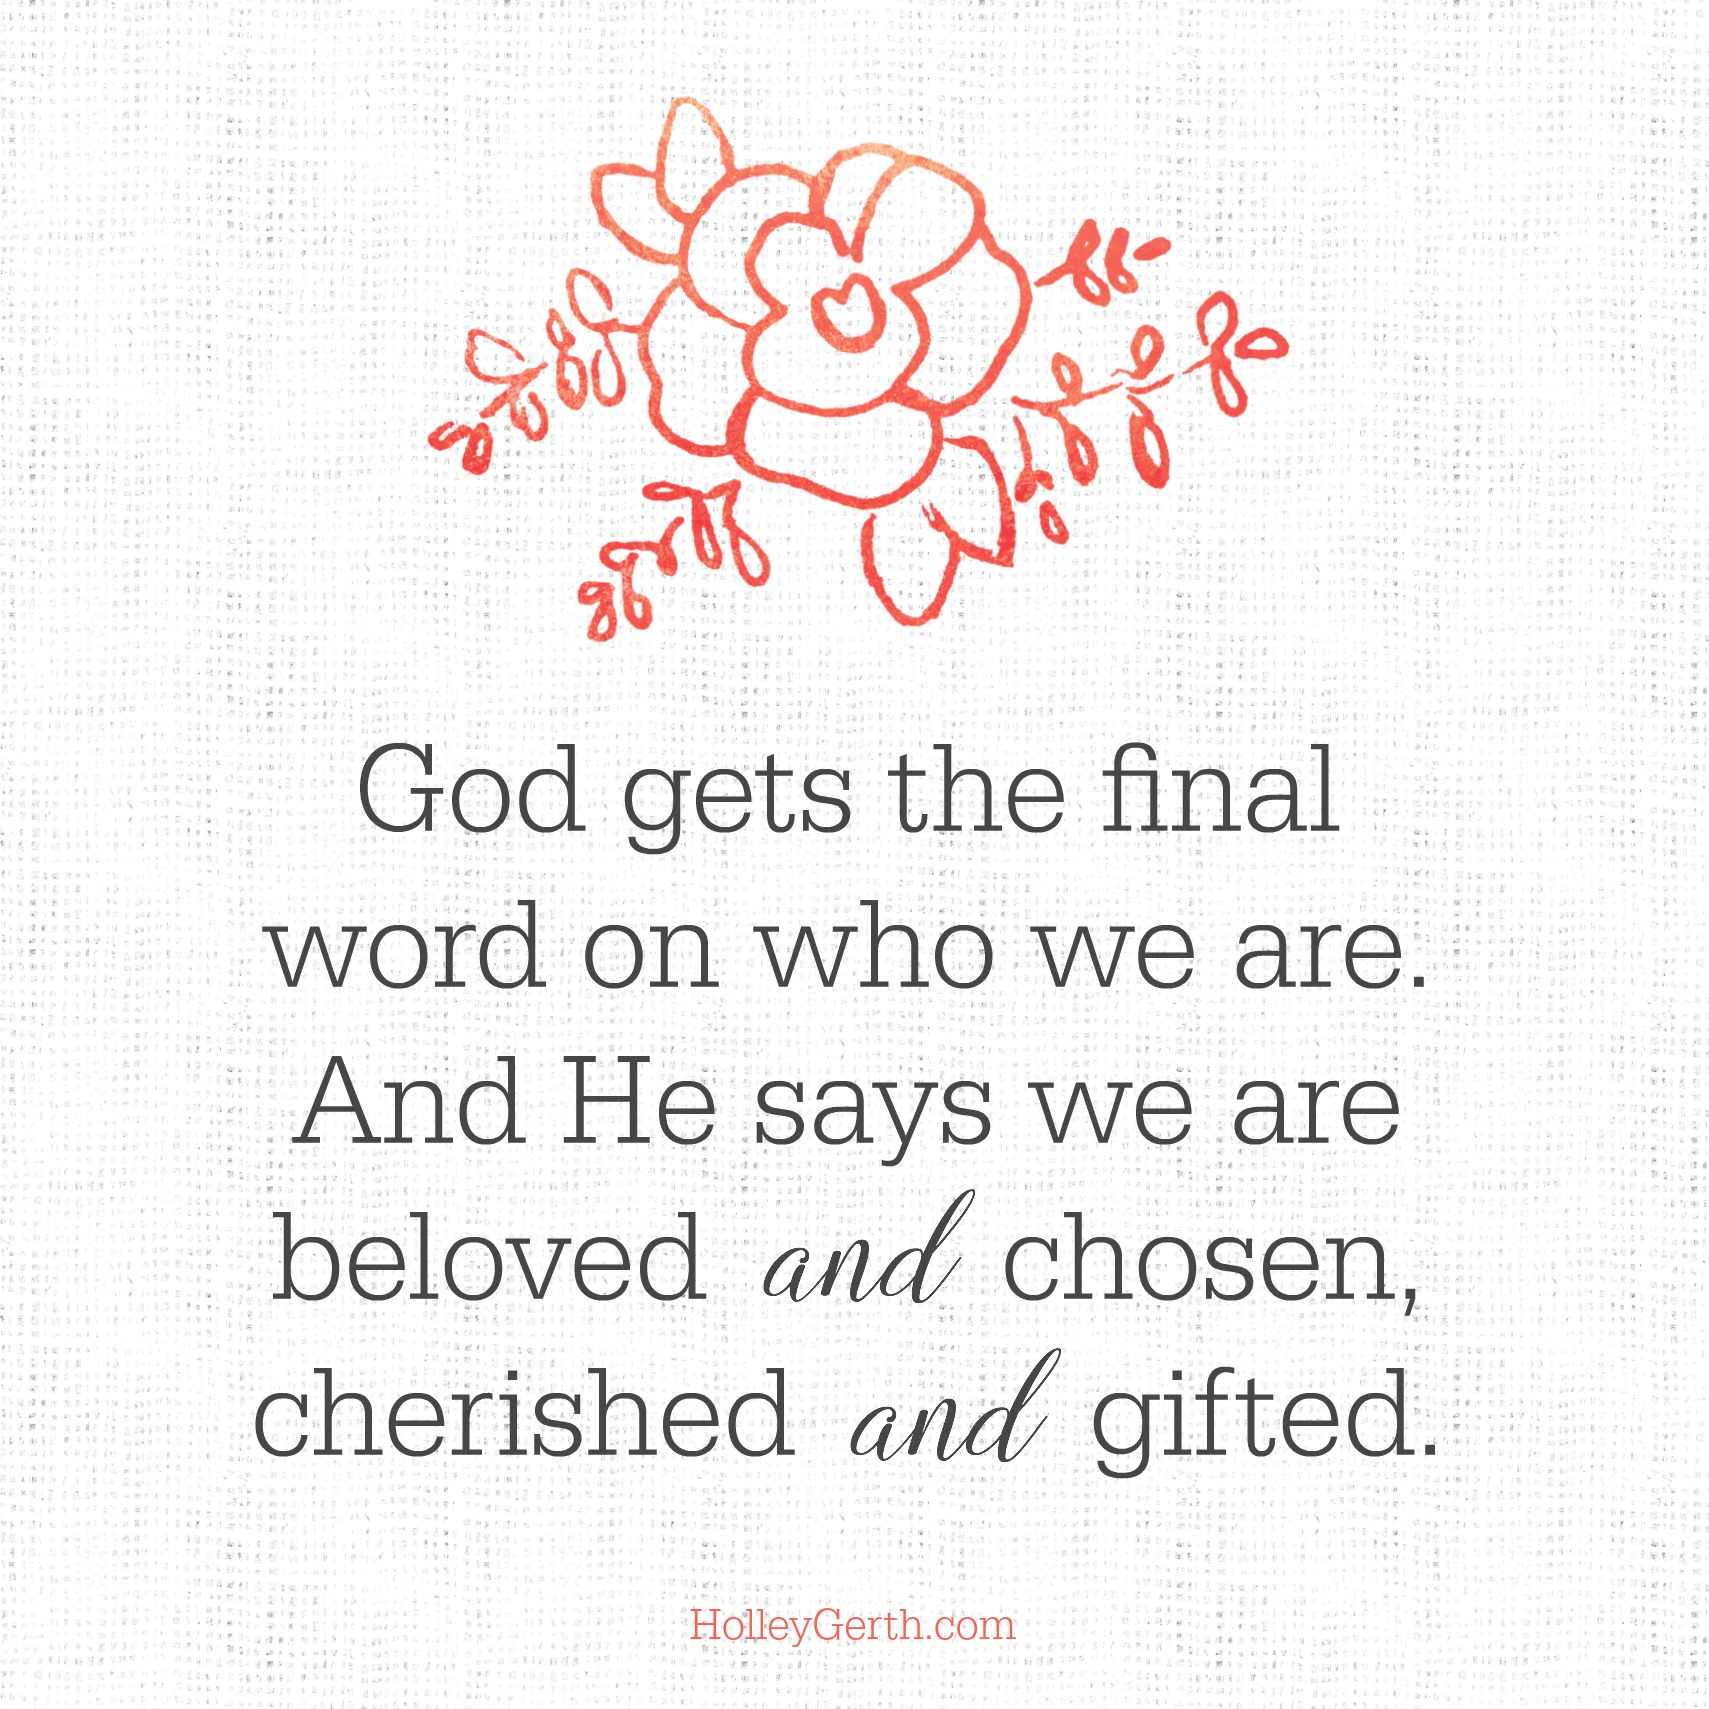 You Are Beloved and Chosen